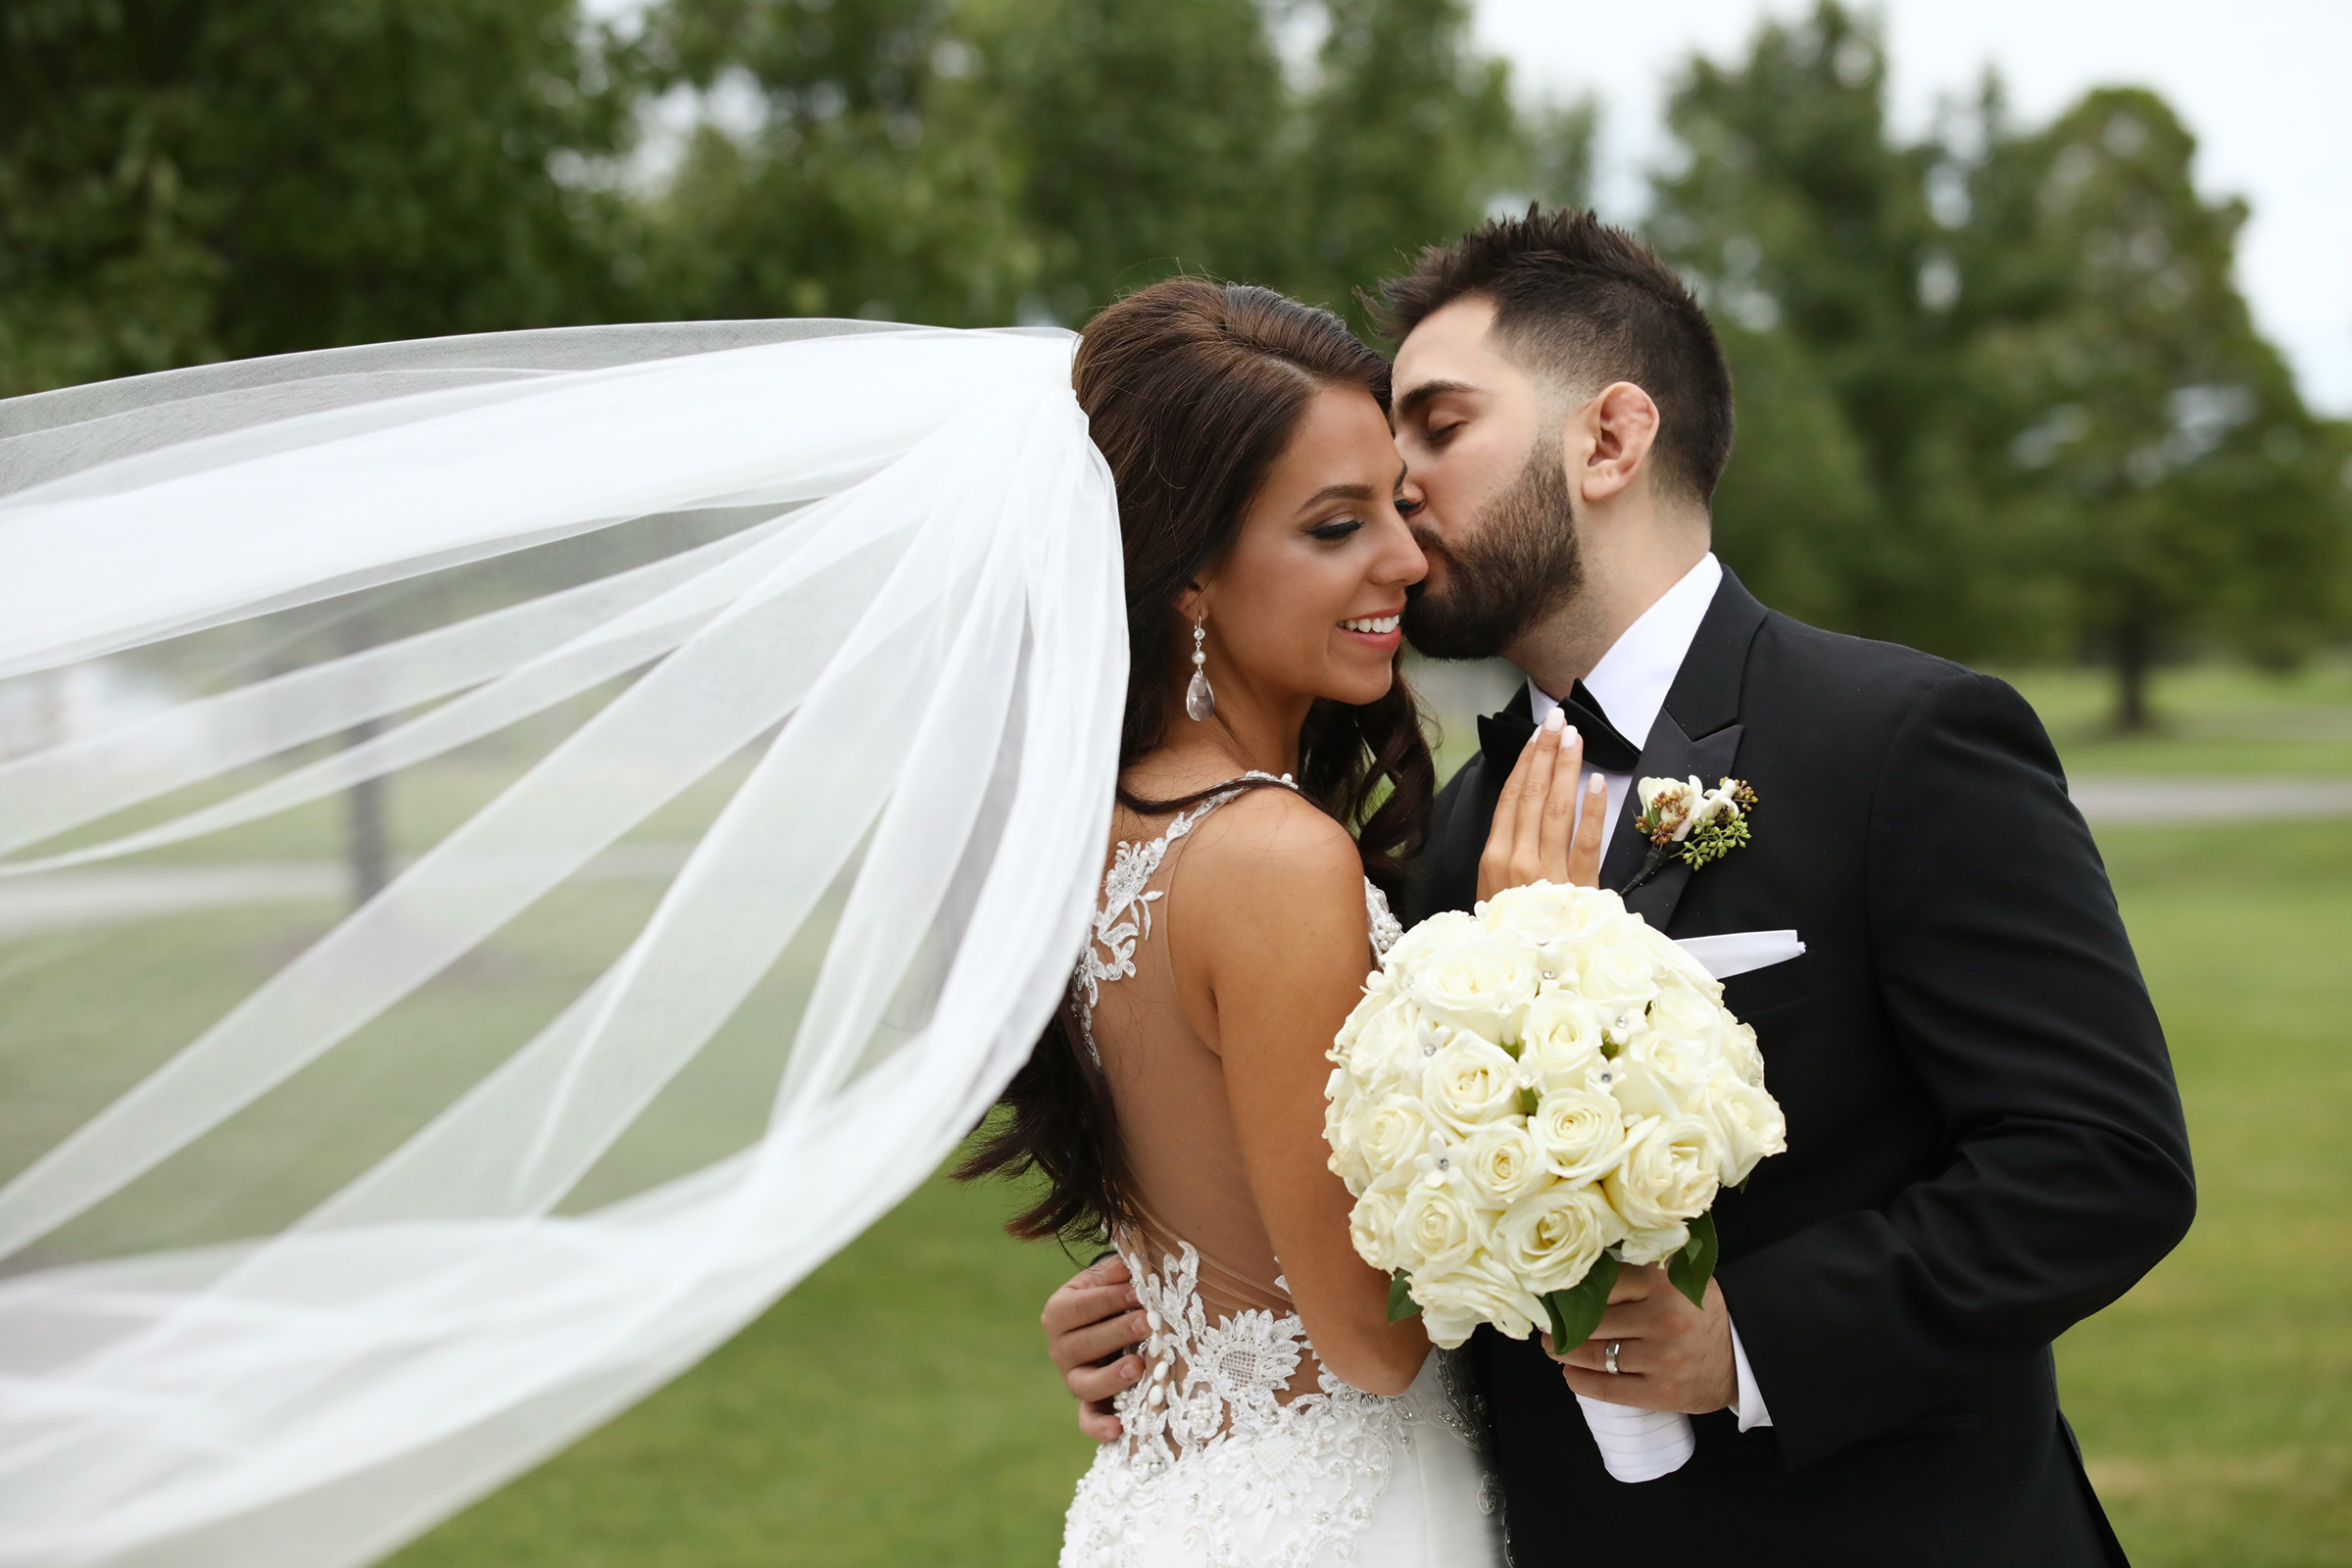 Groom and bride with veil in the breeze - photo by Kenny Kim Photography